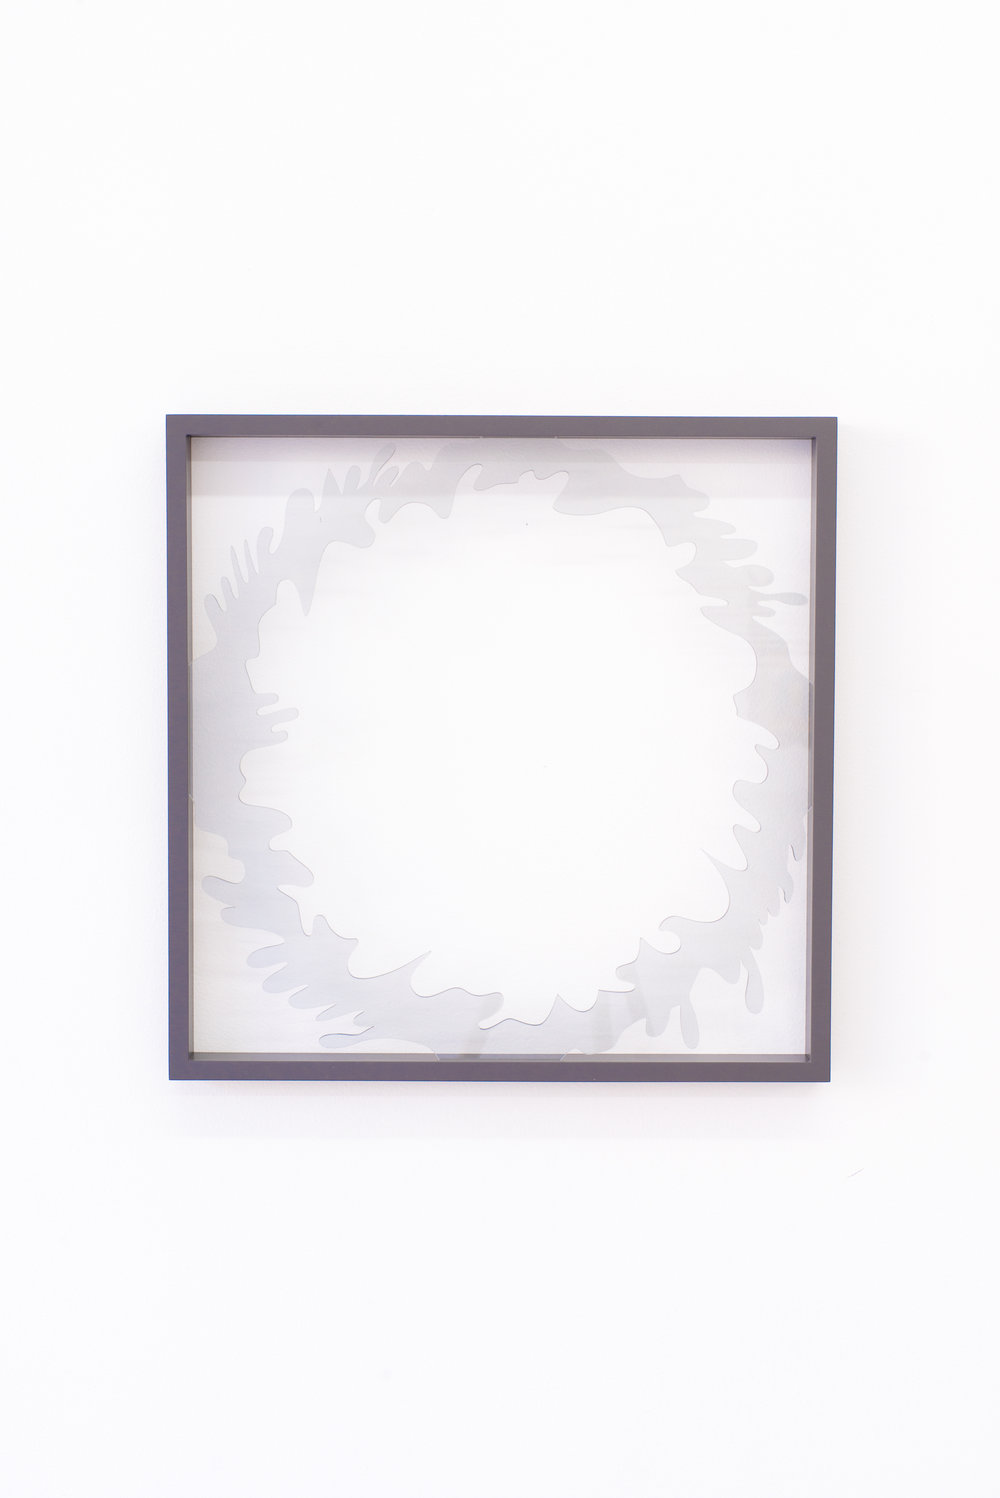 Anna Sagström (You gave me a ring of glass) And it broke and love ended, 2016 Acrylic glass, painted frame, 15.75 x 15.75 inches